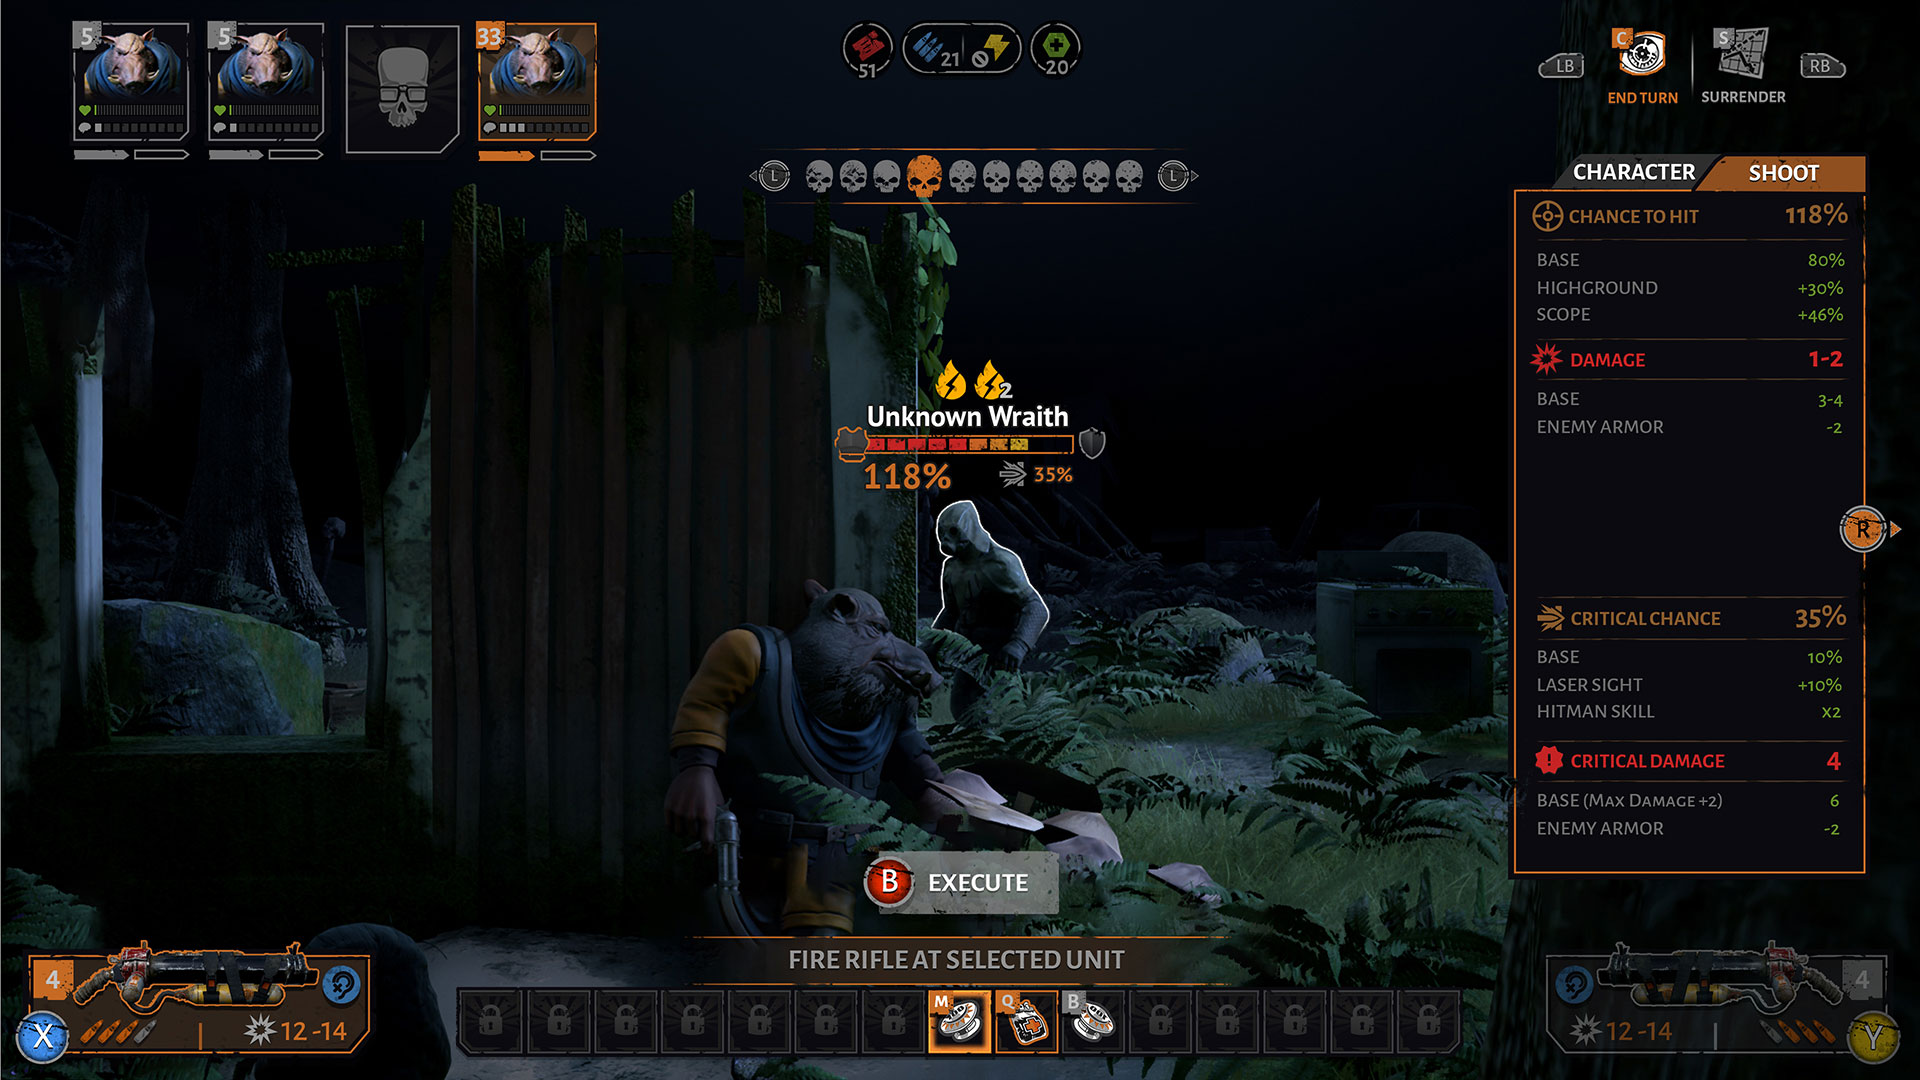 funcom-ui-gameinterface-gameart-roadtoeden-ps4-xbox-tactical-adventure-game-xcom-turn-based-gameux-game-experience-design05